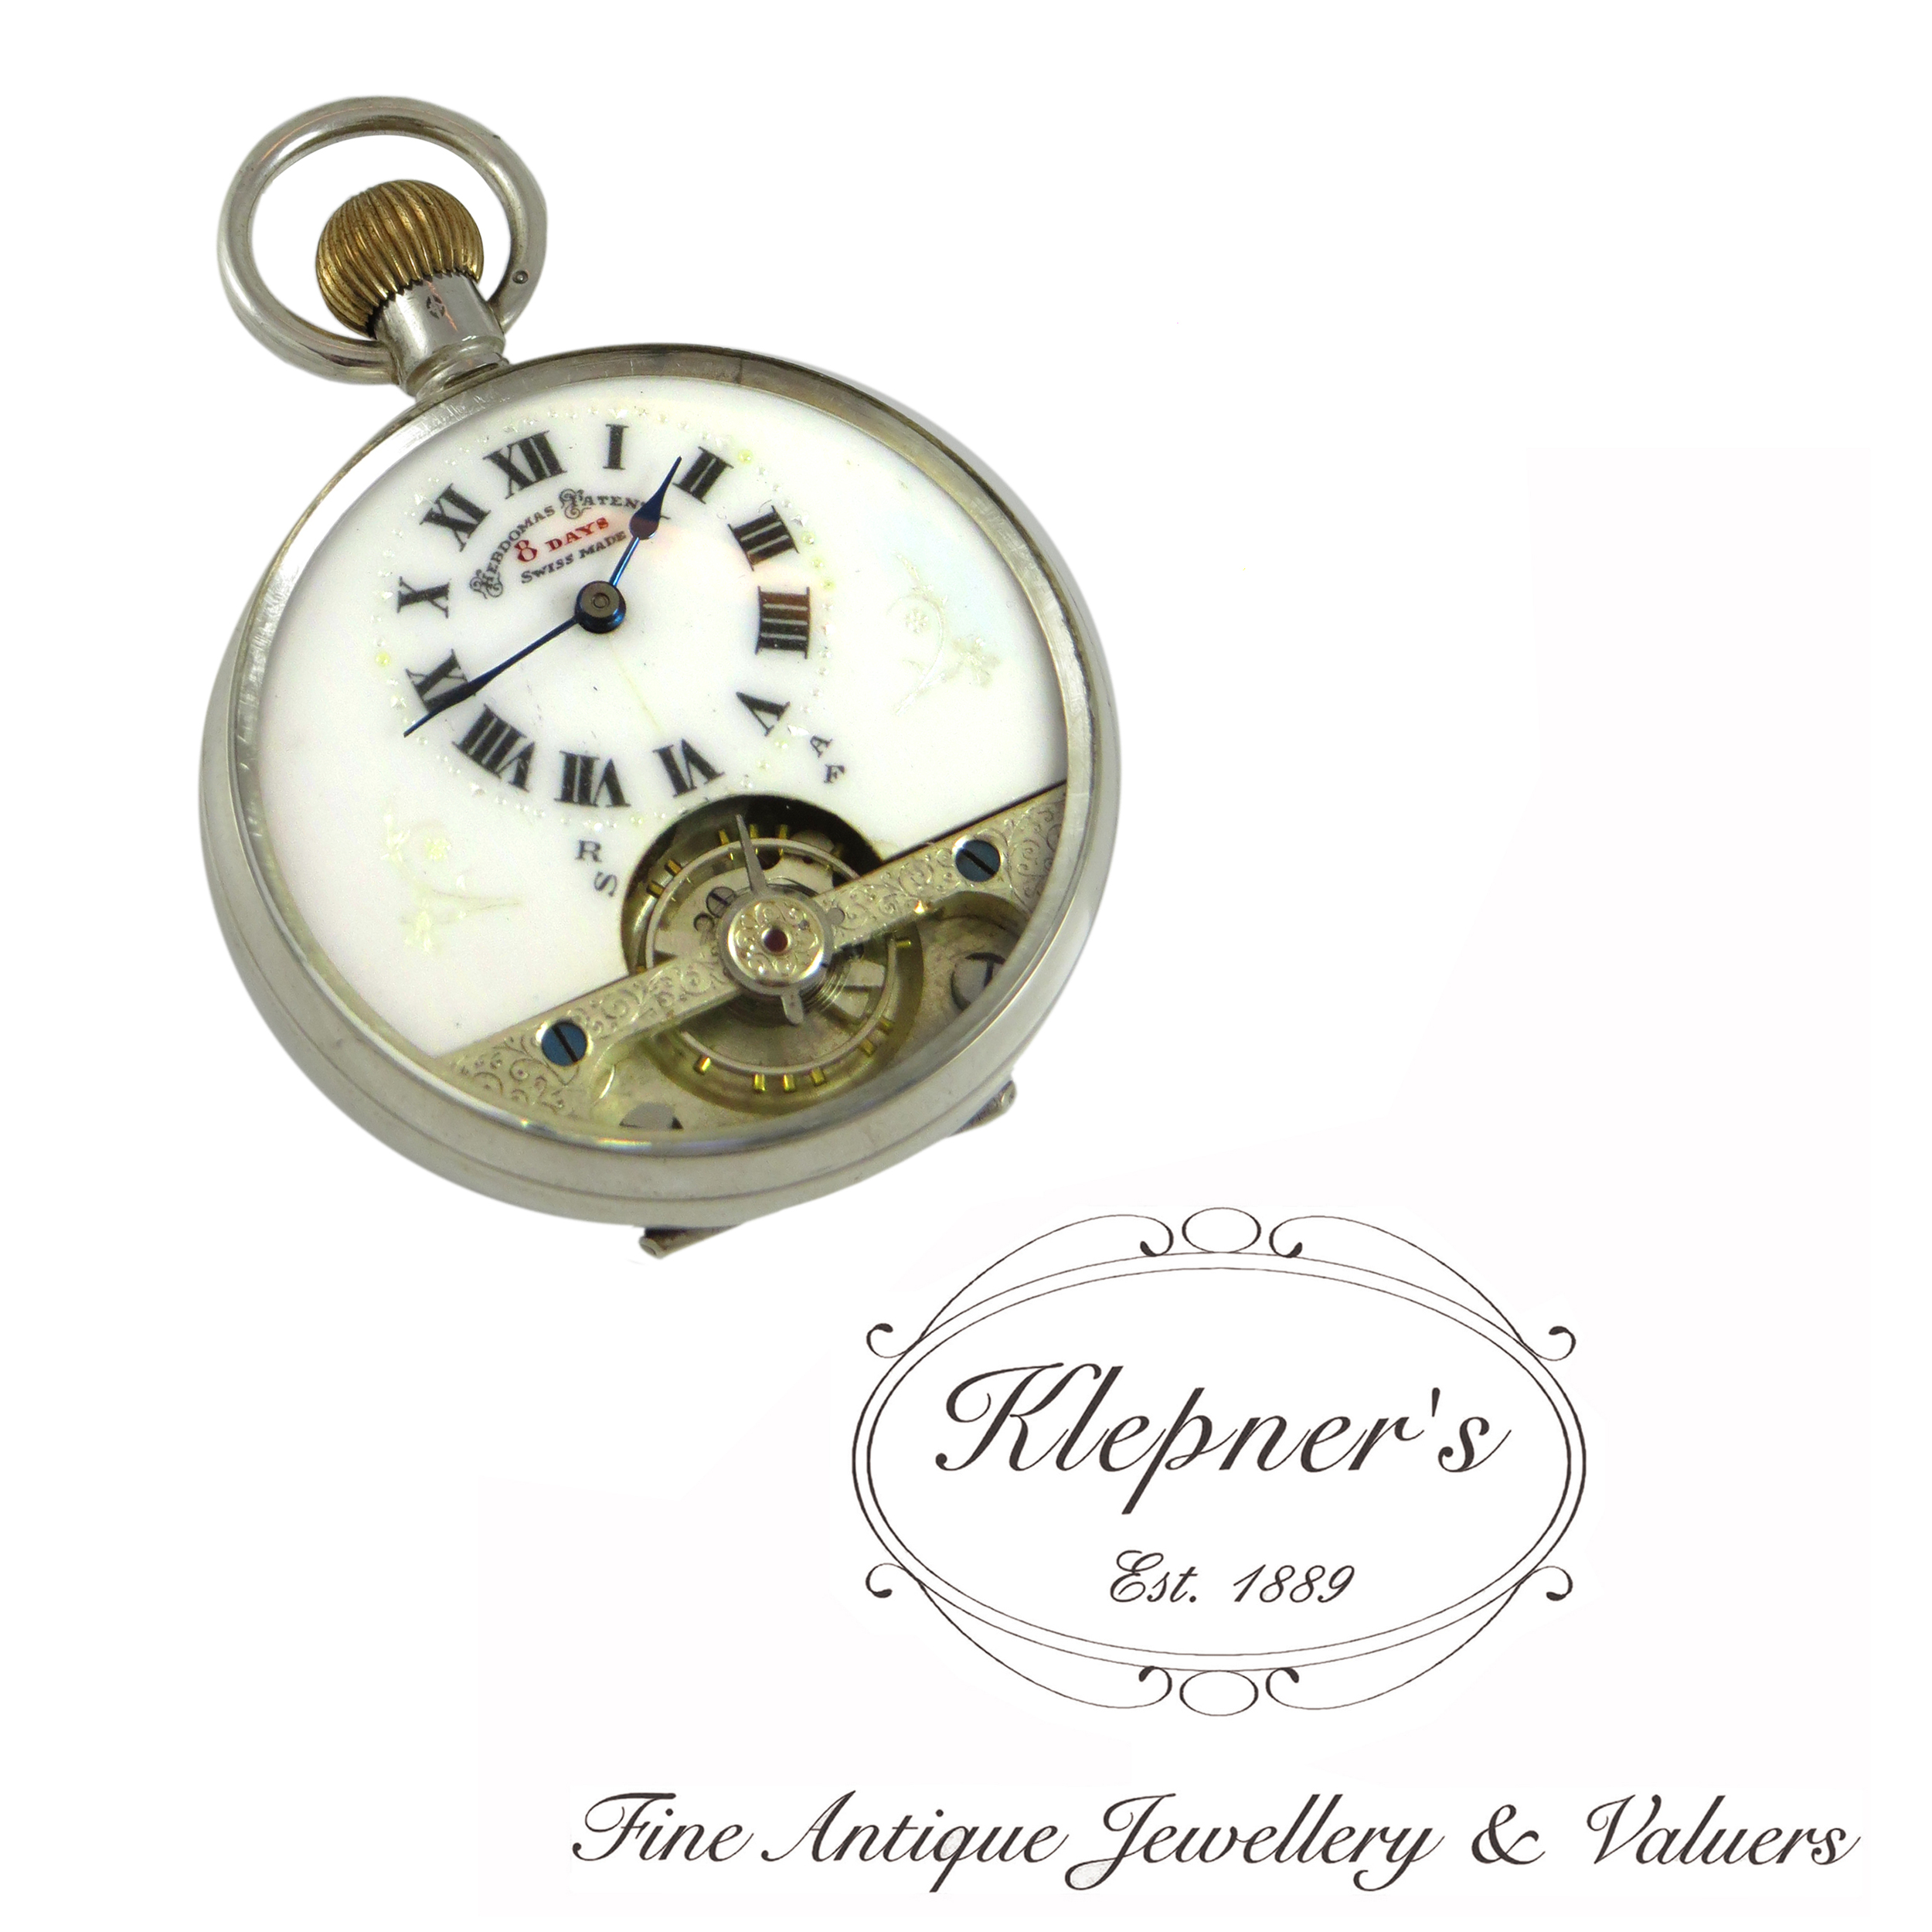 Timepiece Archives